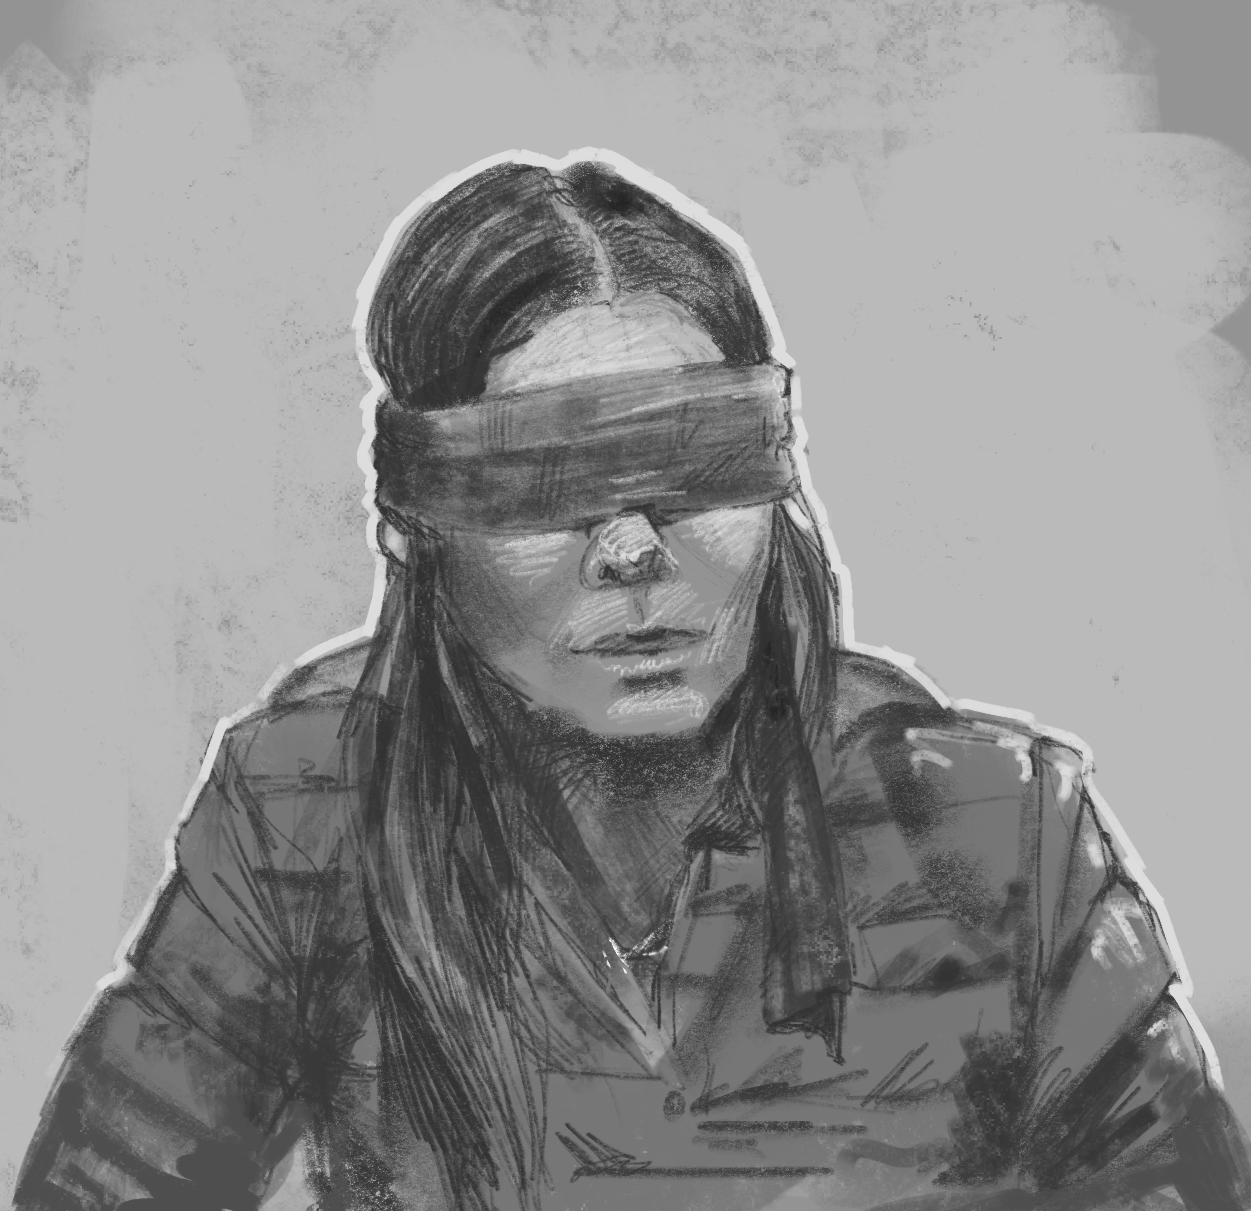 Blindfolded Bullock— Malorie, player by Sandra Bullock, stands blindfolded, avoiding the monsters lurking the Earth. Birdbox is available on Netflix.